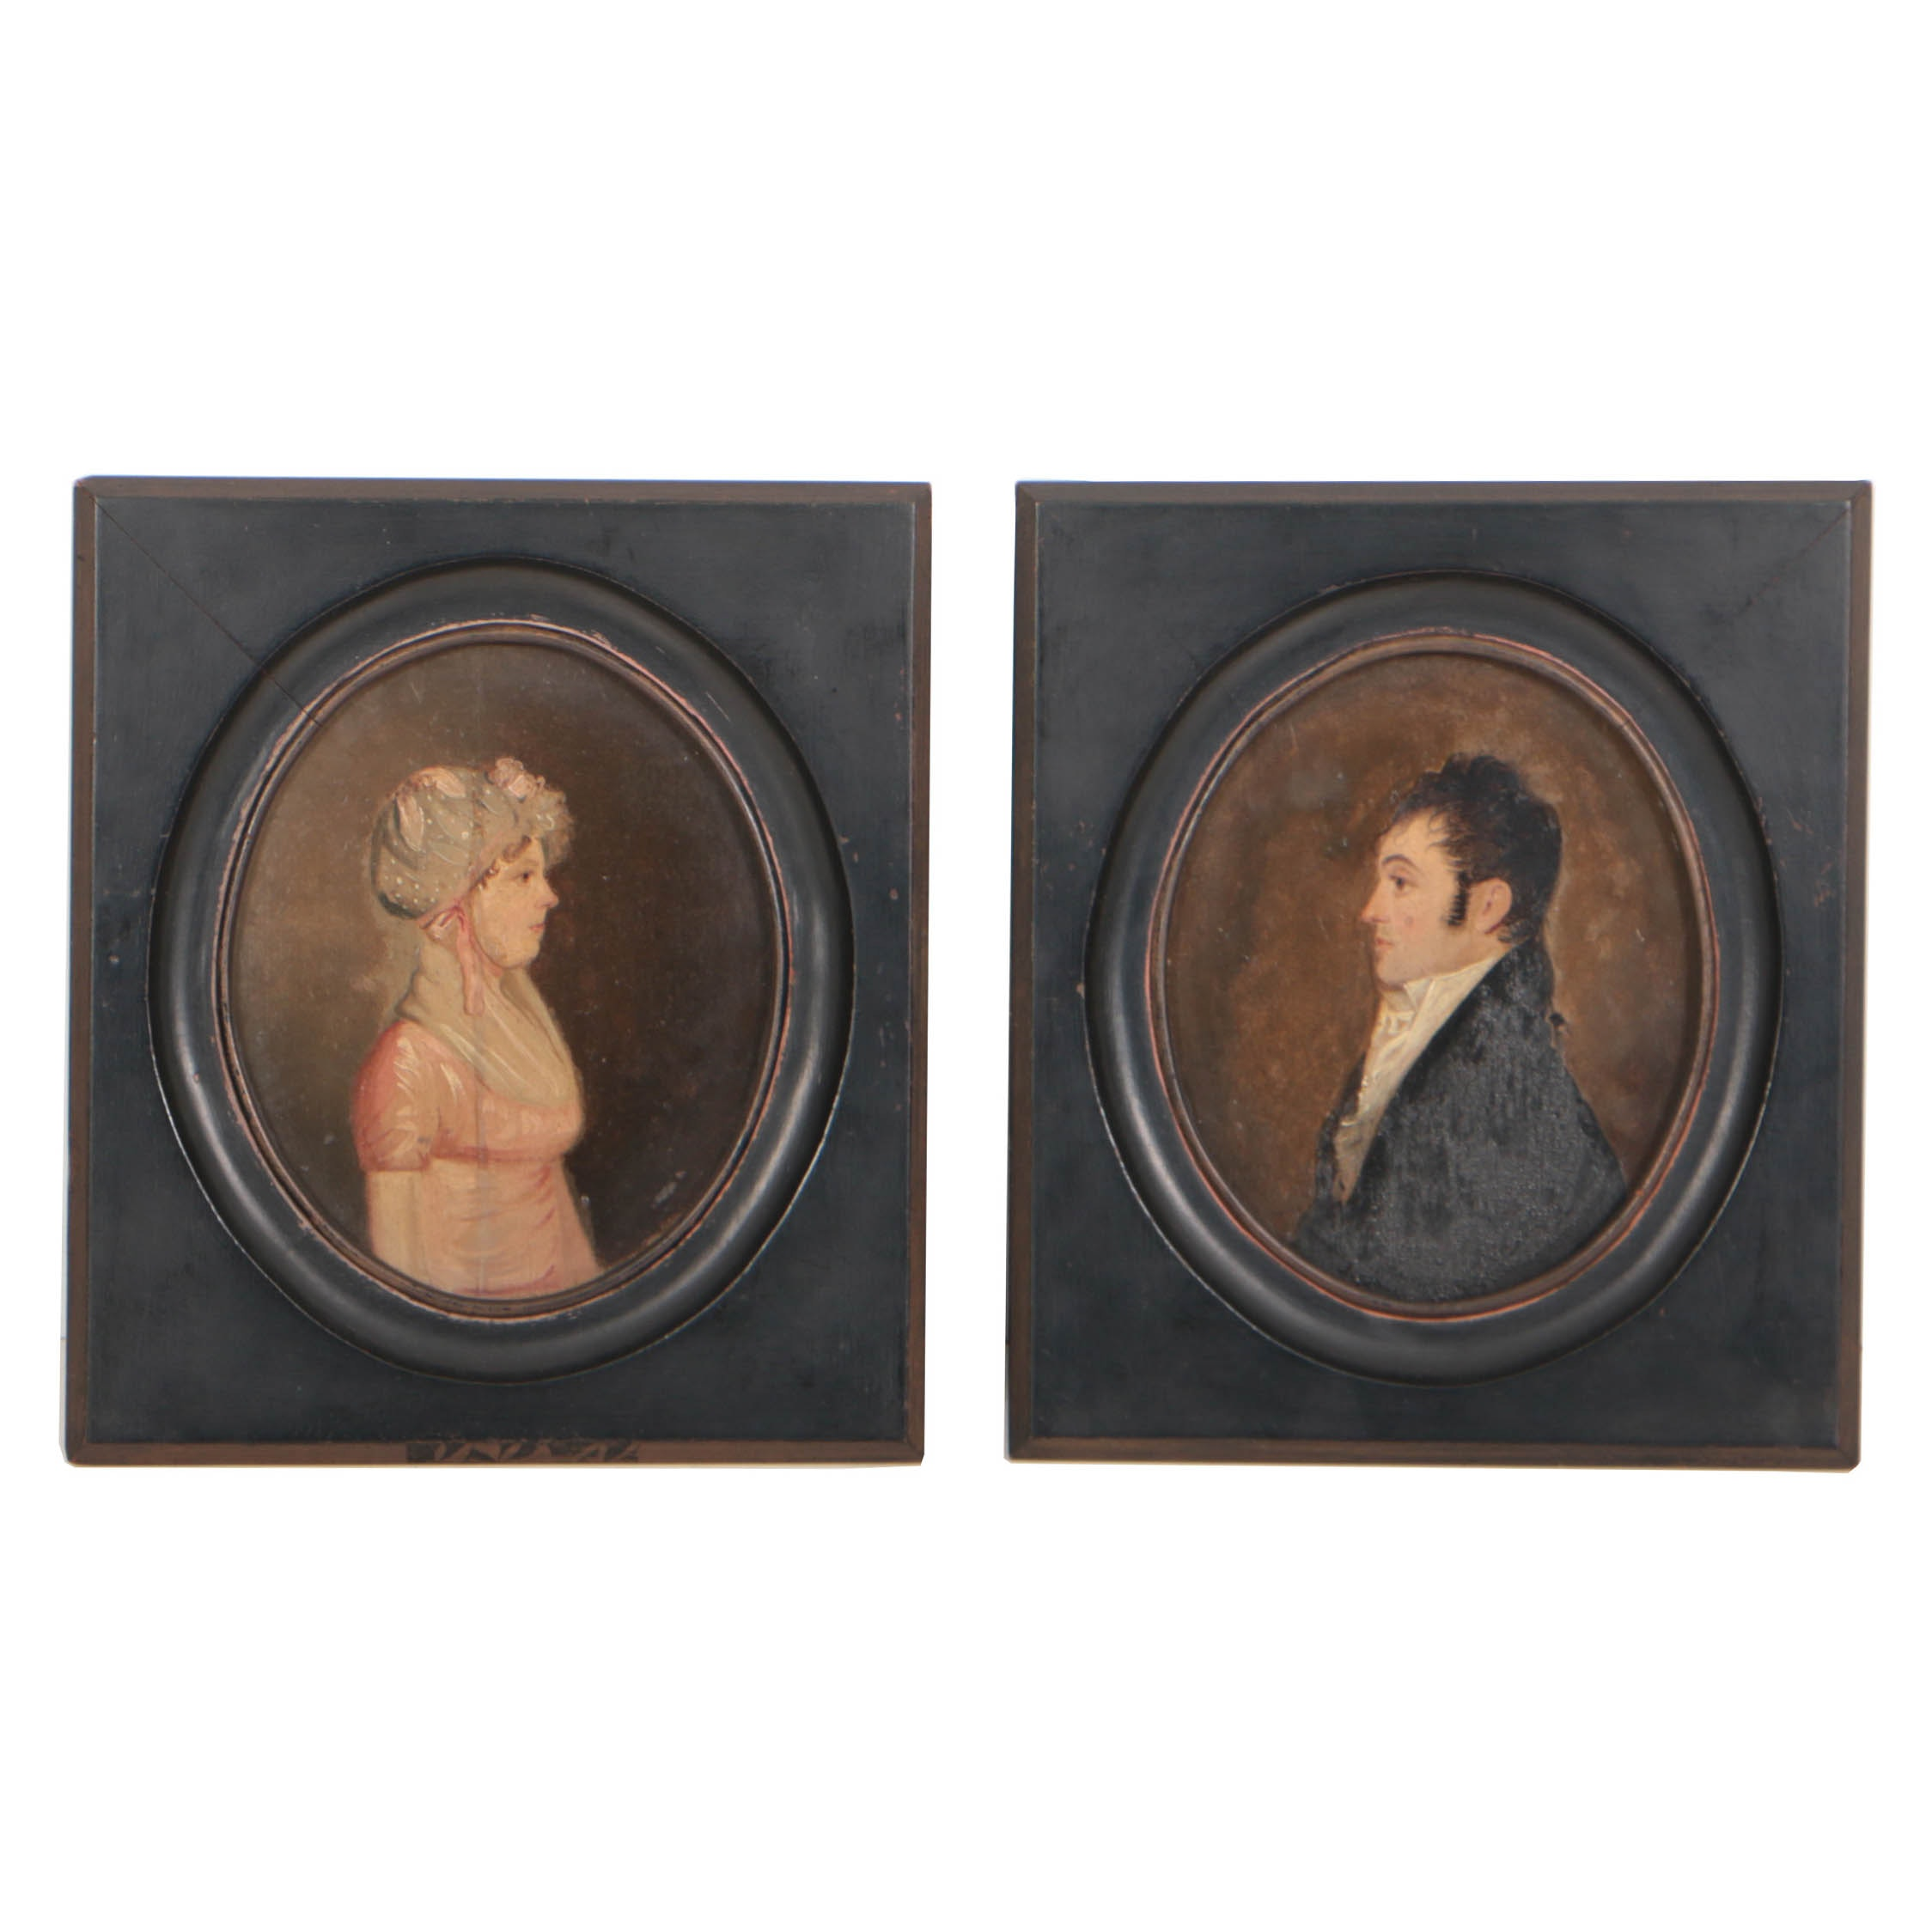 Pair of American School Early 19th Century Oil Portraits of Lady and Gentleman